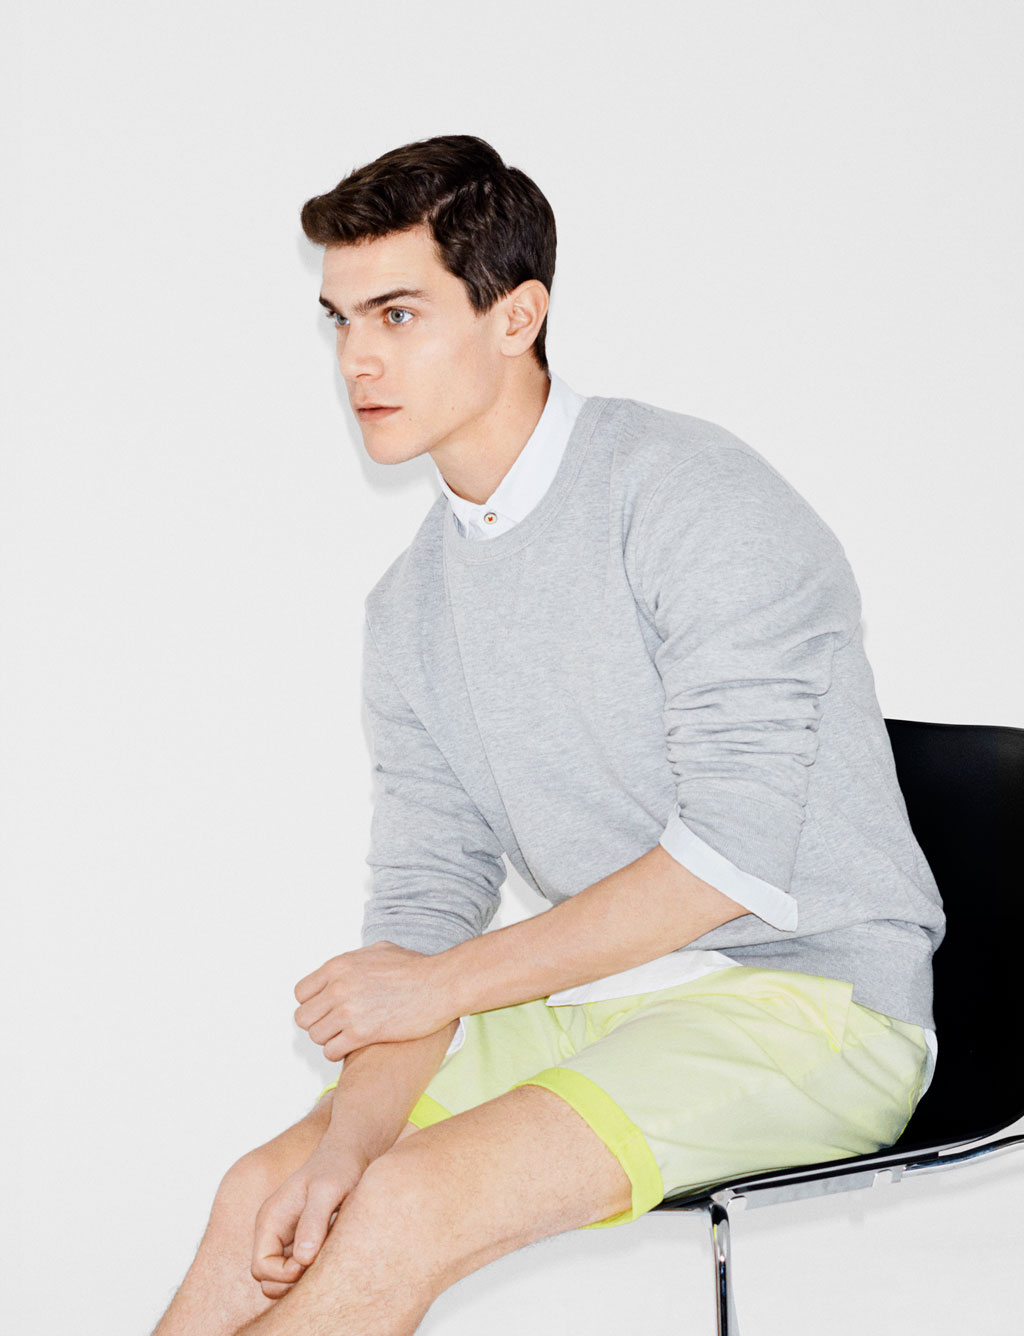 Justin Passmore & Vincent LaCrocq Model Spring Styles for Zara